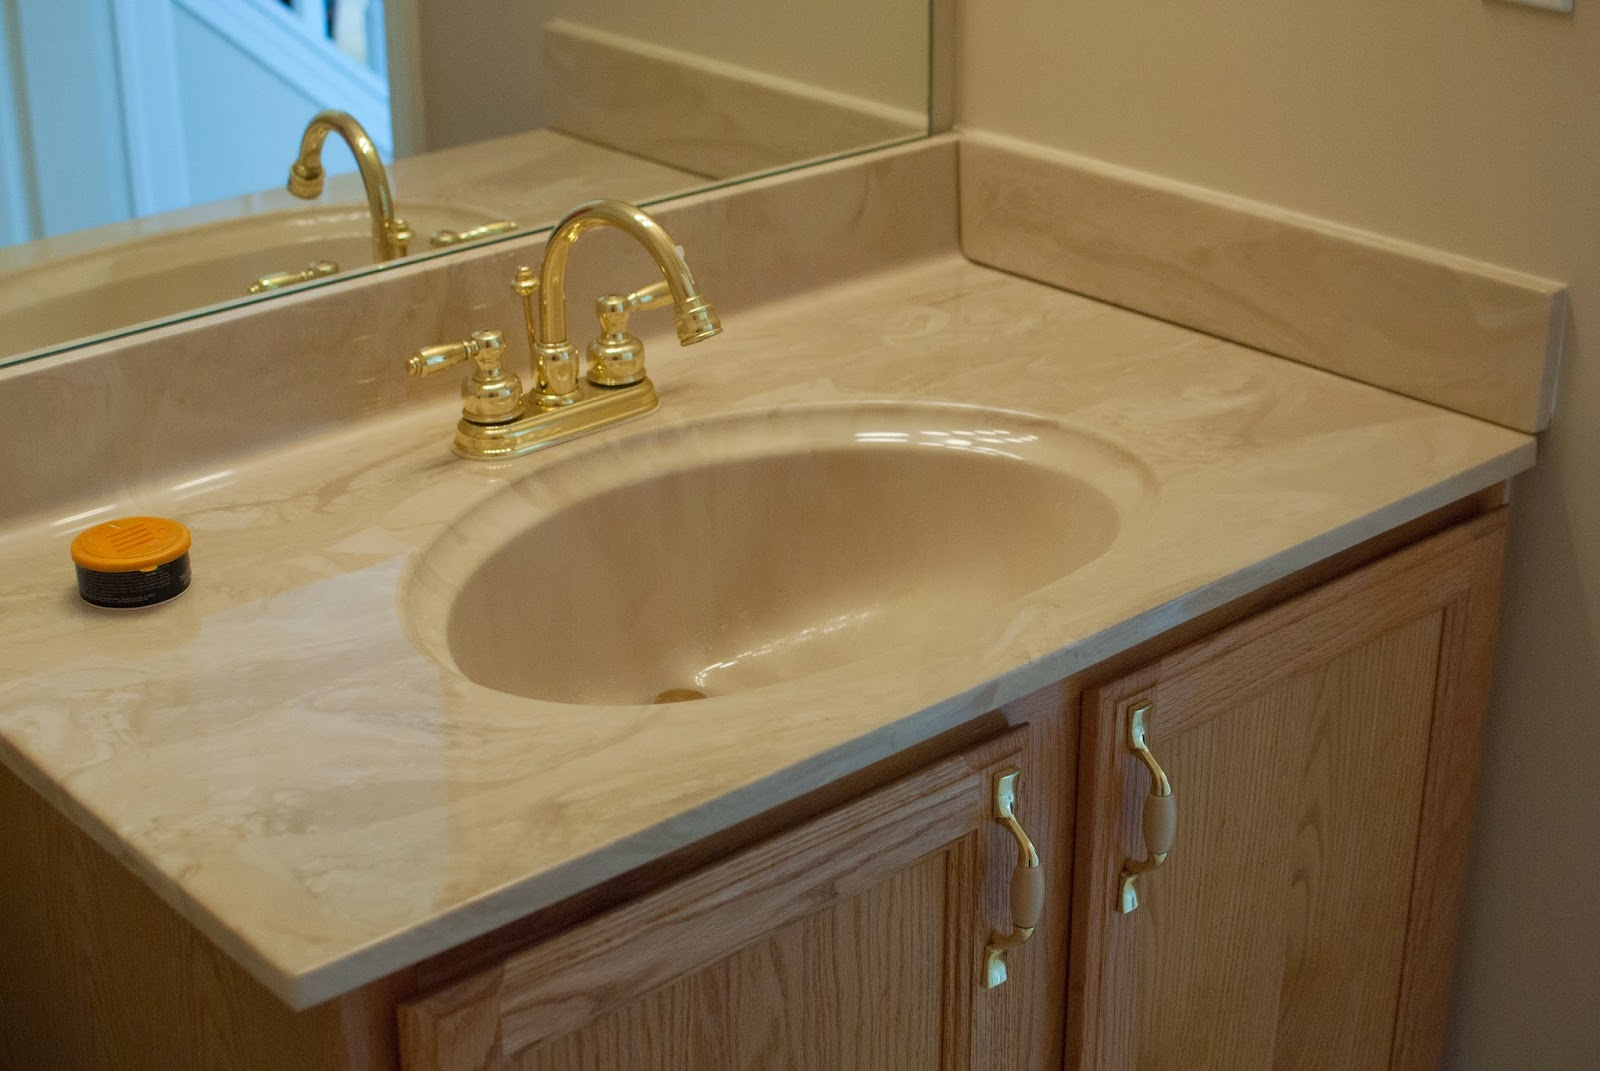 Vanity sink and countertop before i m flying south featured on remodelaholic